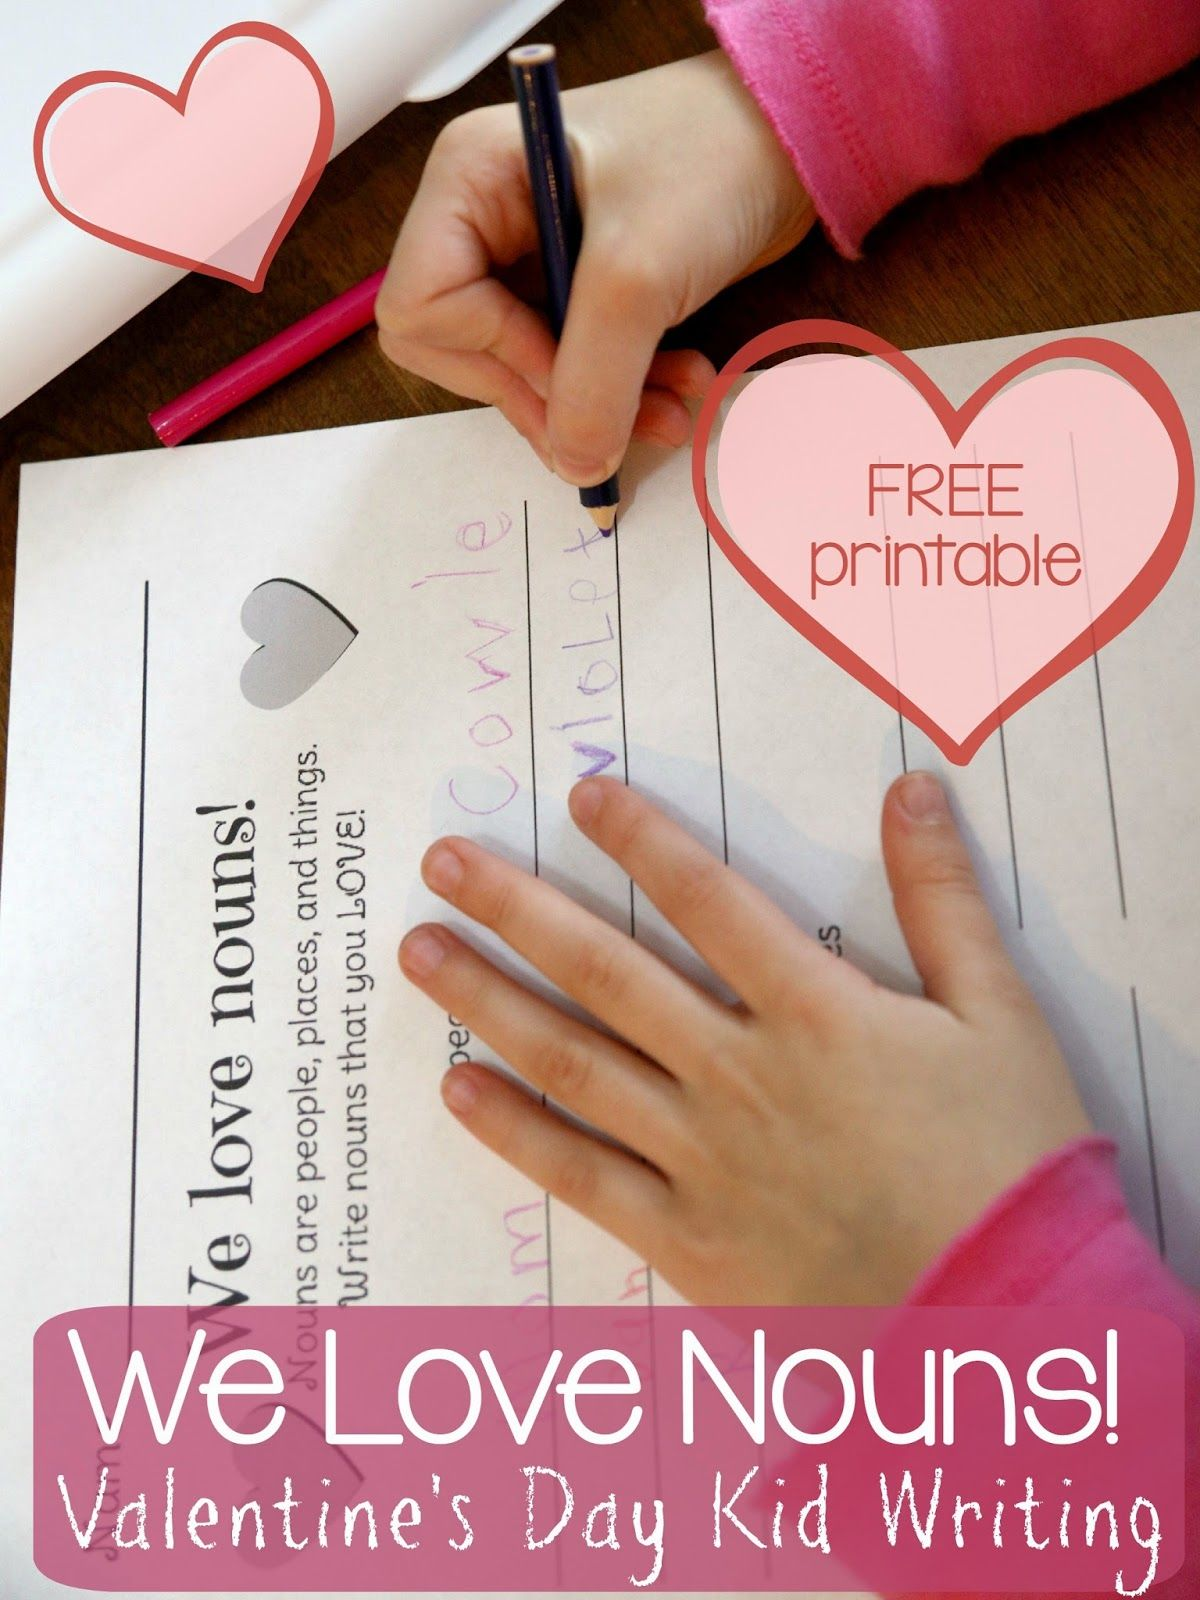 We Love Nouns Kid Writing With Free Printable